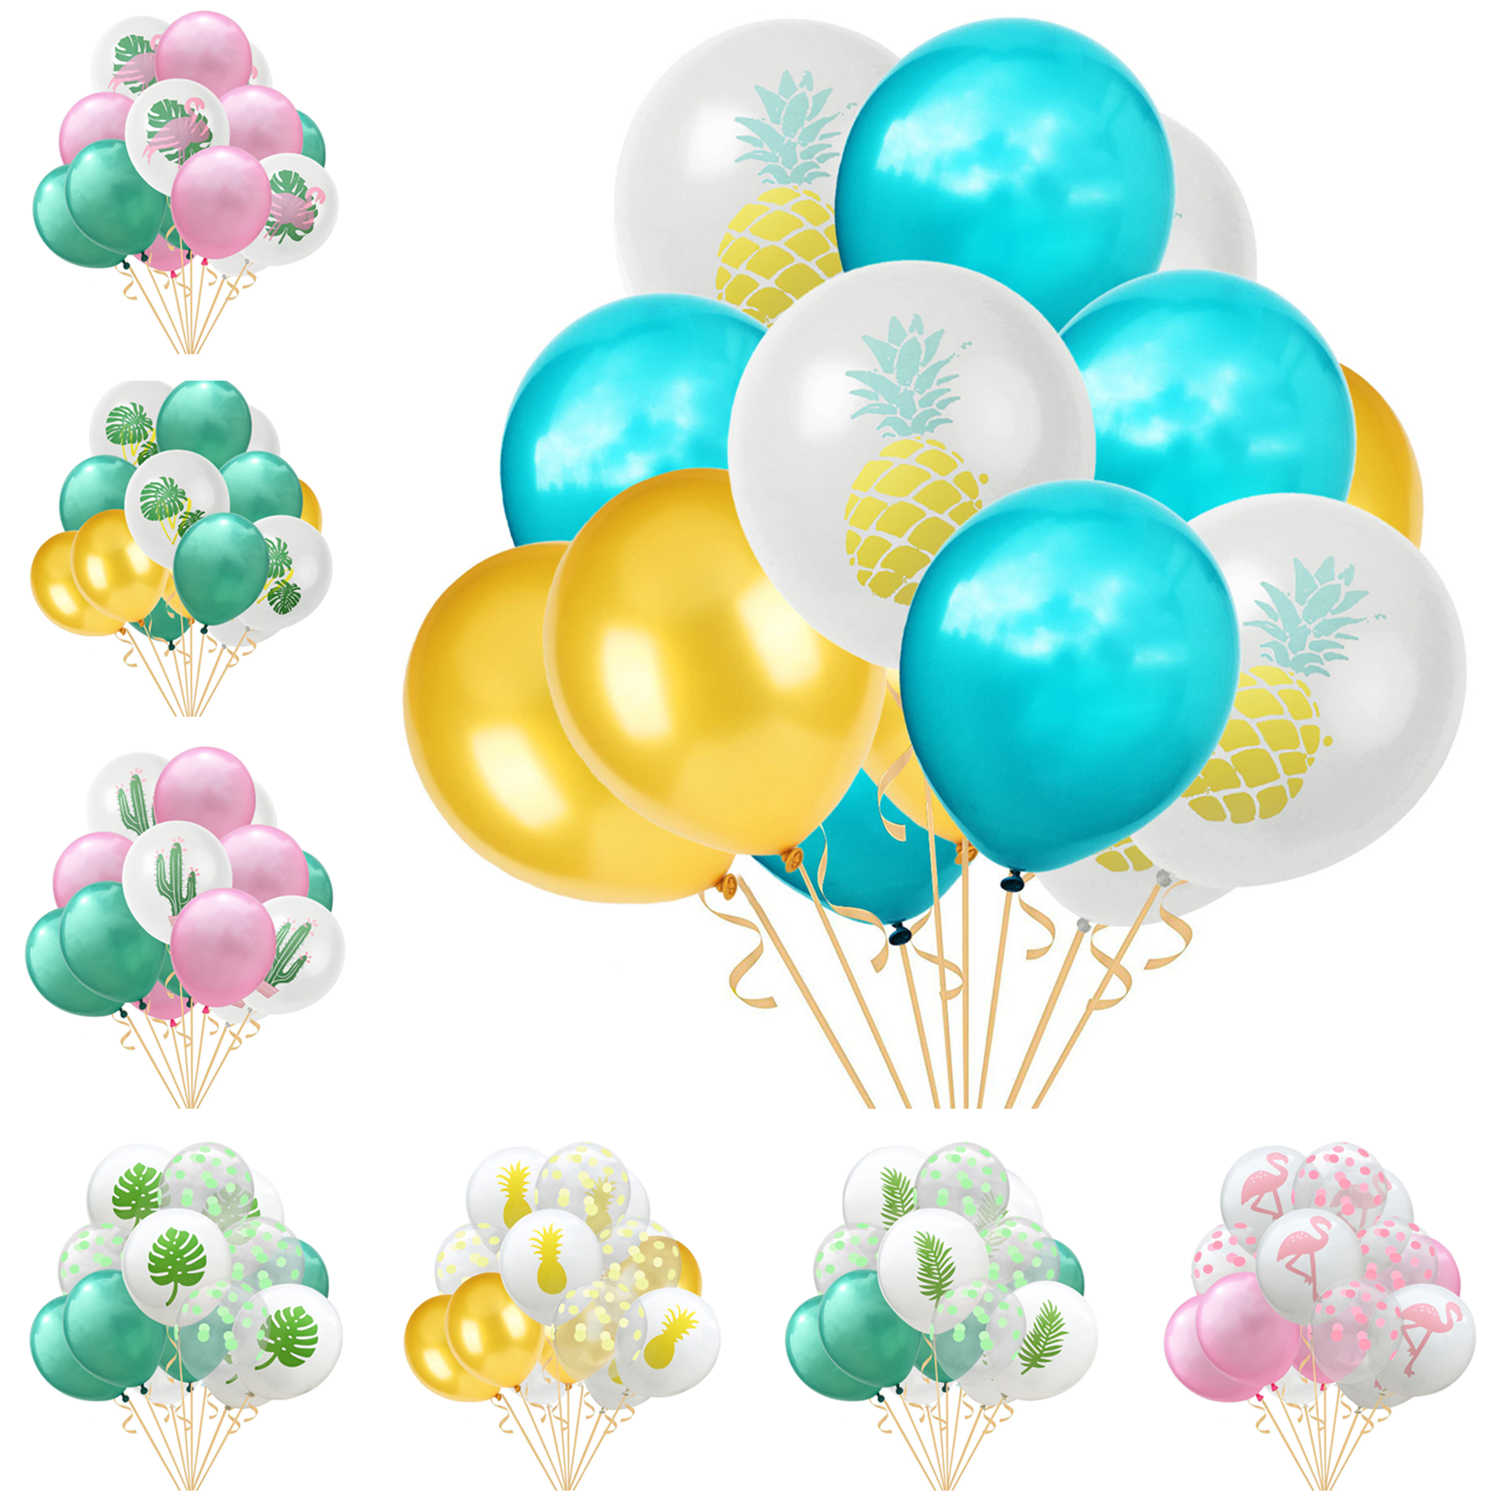 15pcs/set Pineapple Cactus Tropical Leaf Latex Balloons Pearl Helium Balloon Baby Shower Happy Birthday Wedding Party Decoration